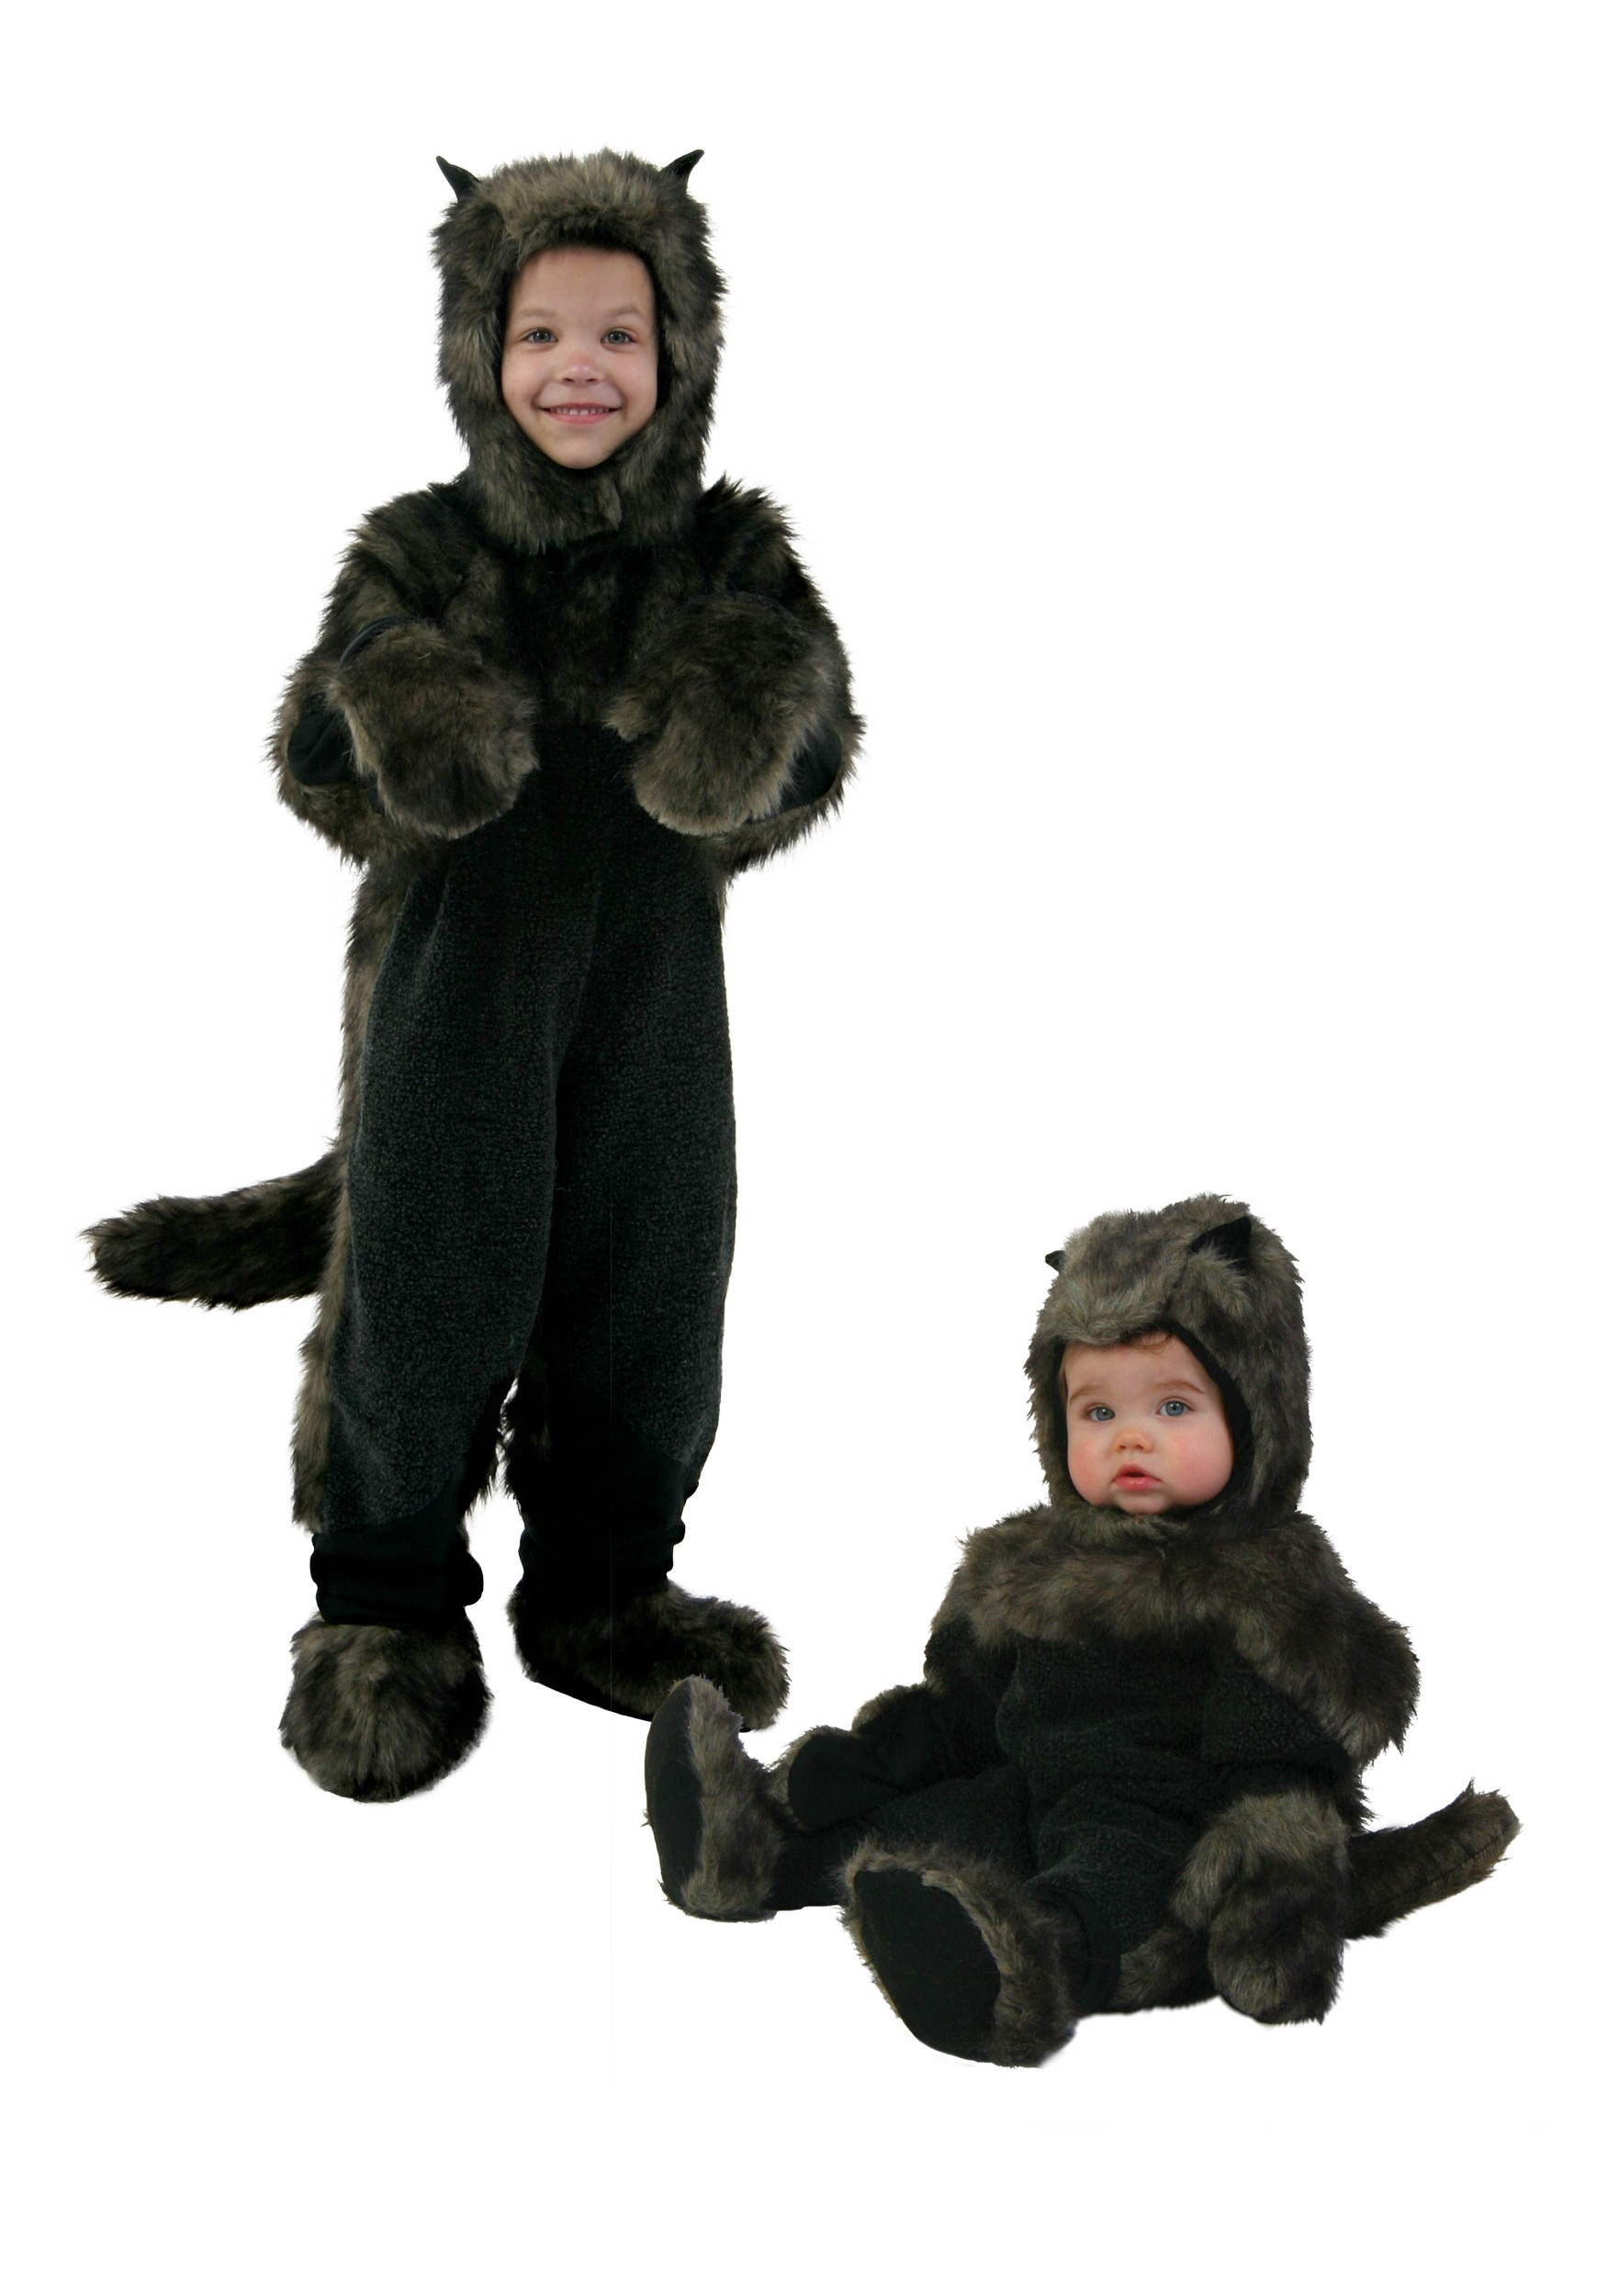 Toddler Toto Costume  sc 1 st  Halloween Costume & Toddler Toto Costume - Kids Wizard of Oz Toto Halloween Costumes